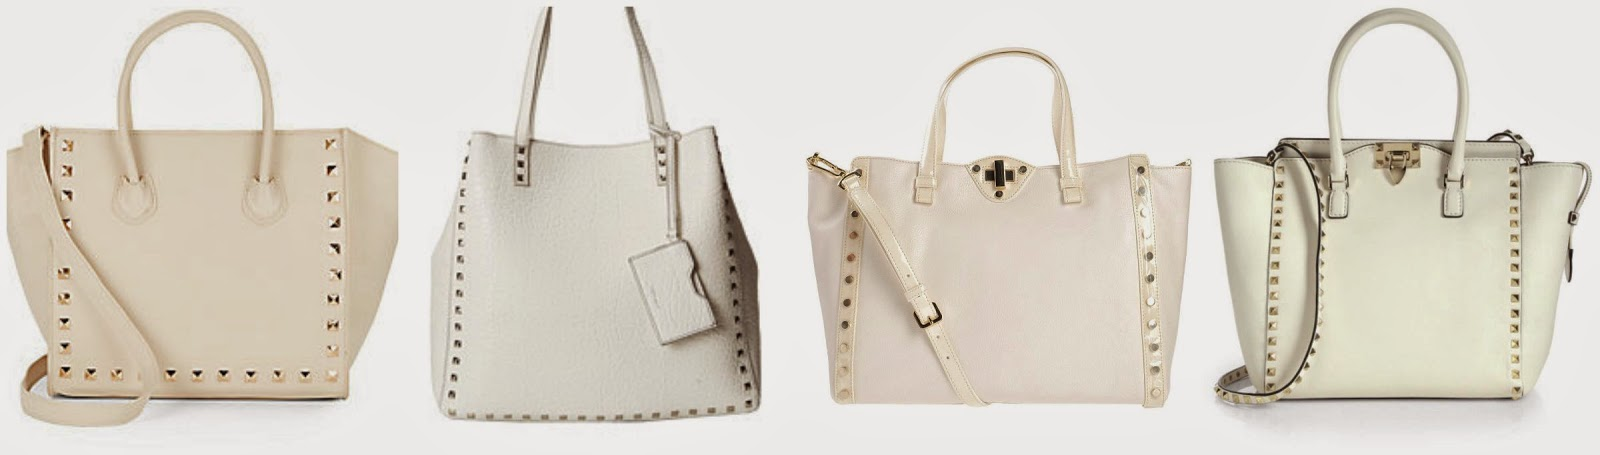 Valentino rockstud handbag and knockoffs for under $125 in cream, ivory and white